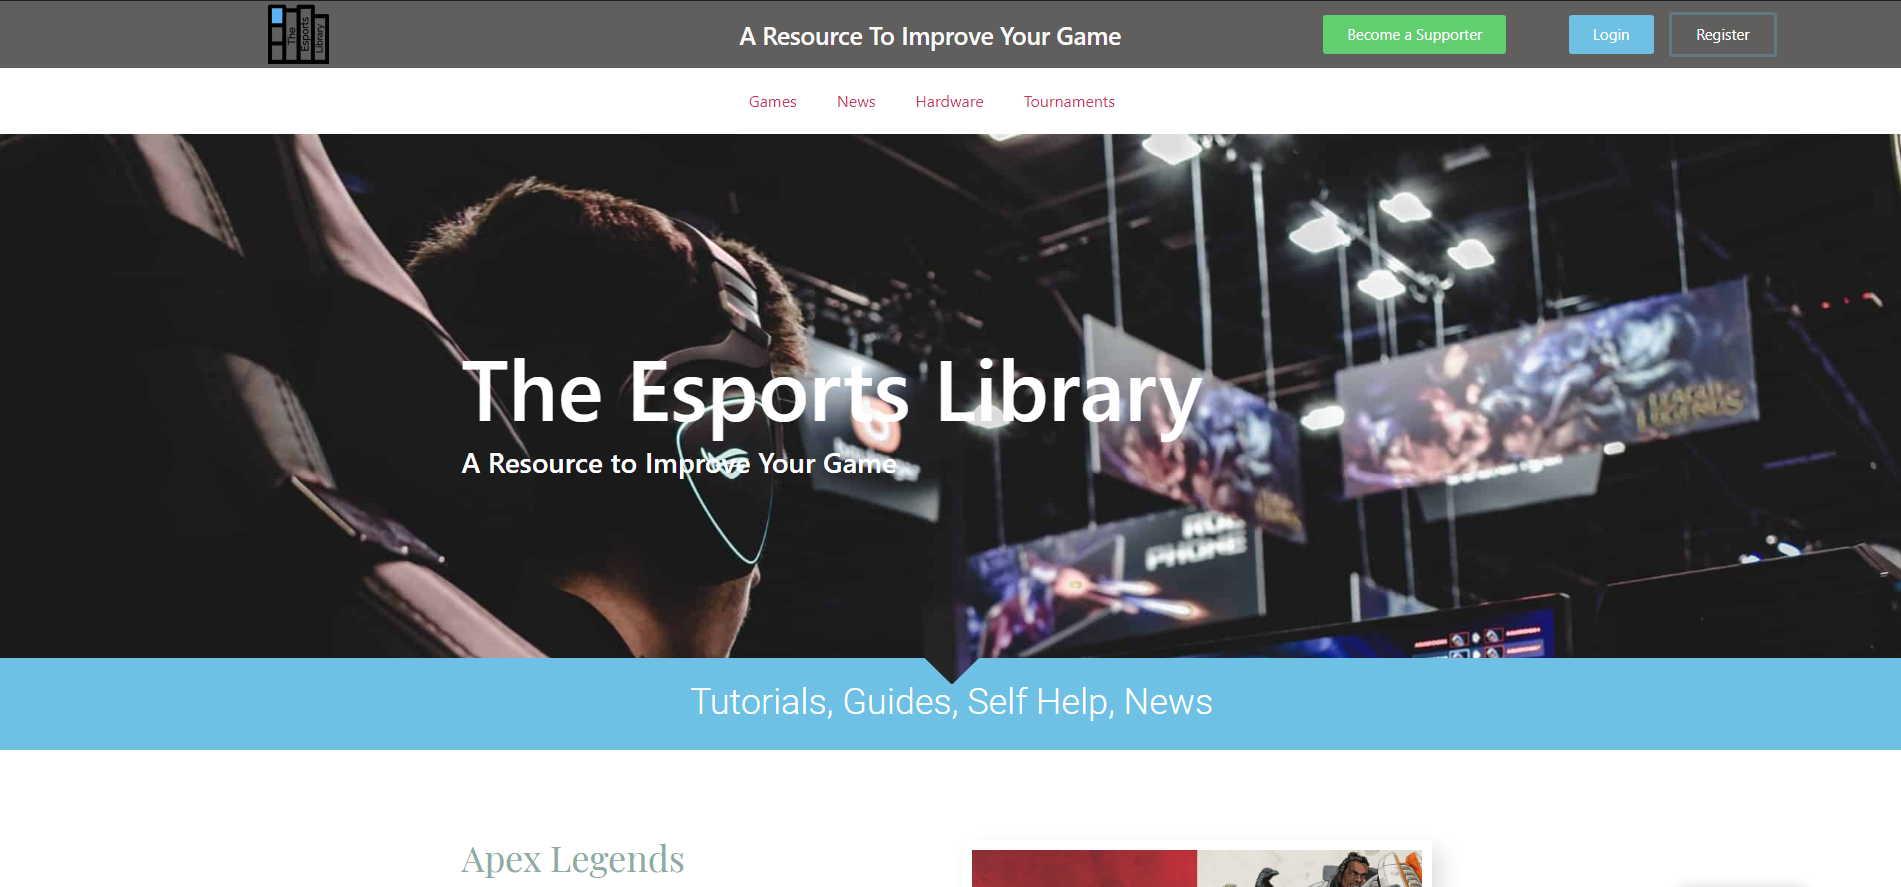 the esports library website